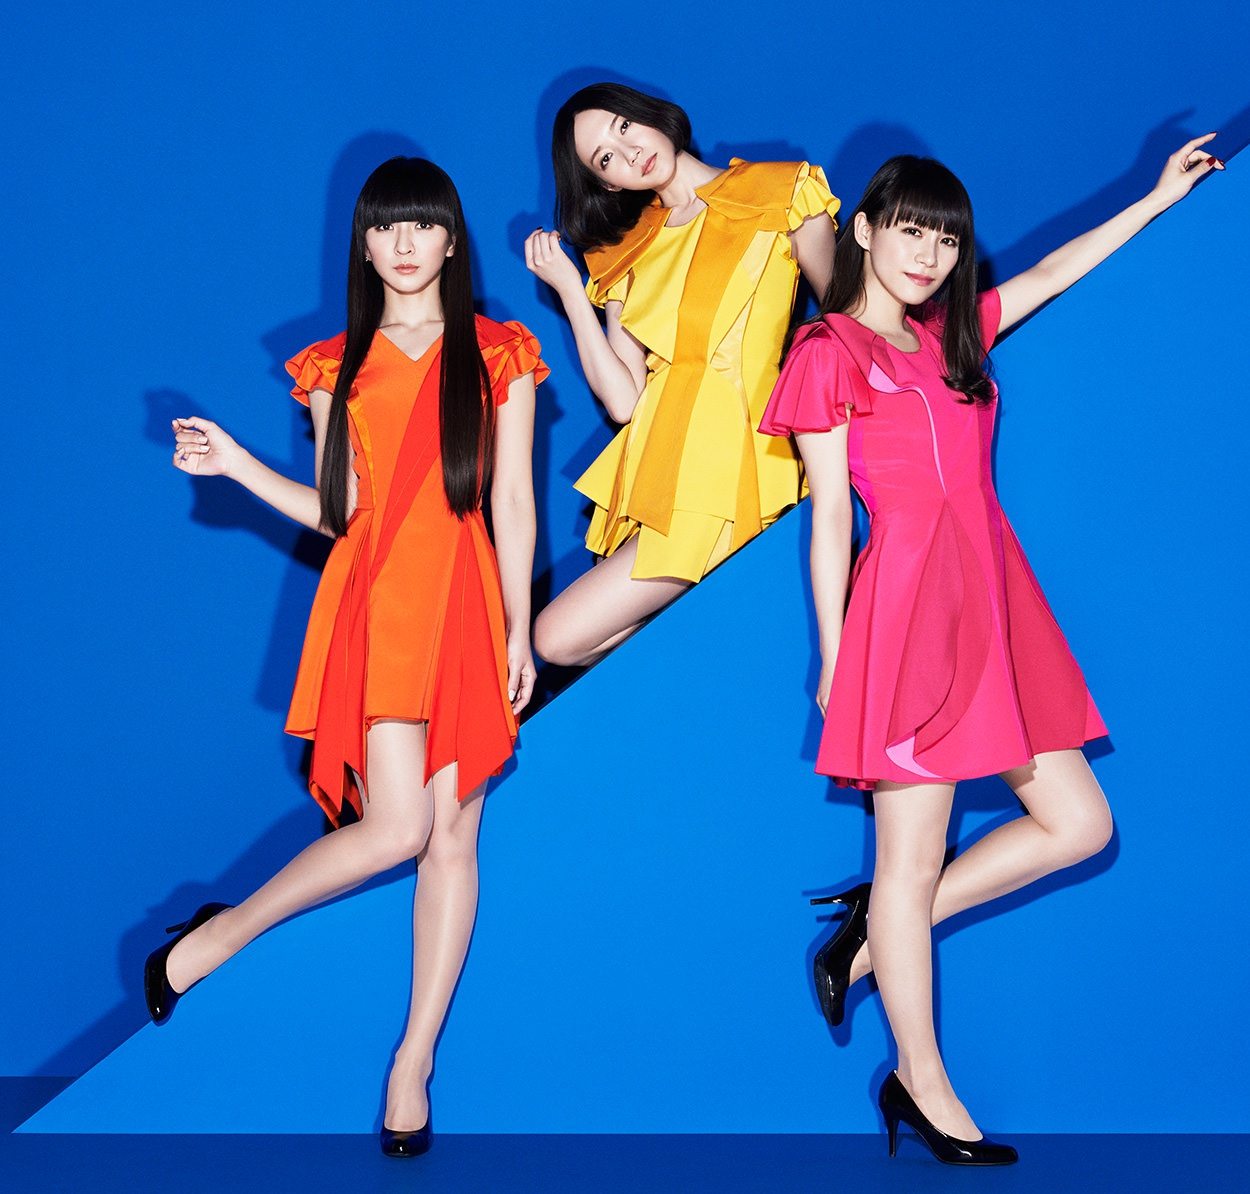 NekoPOP-Perfume-Interview-2016-1